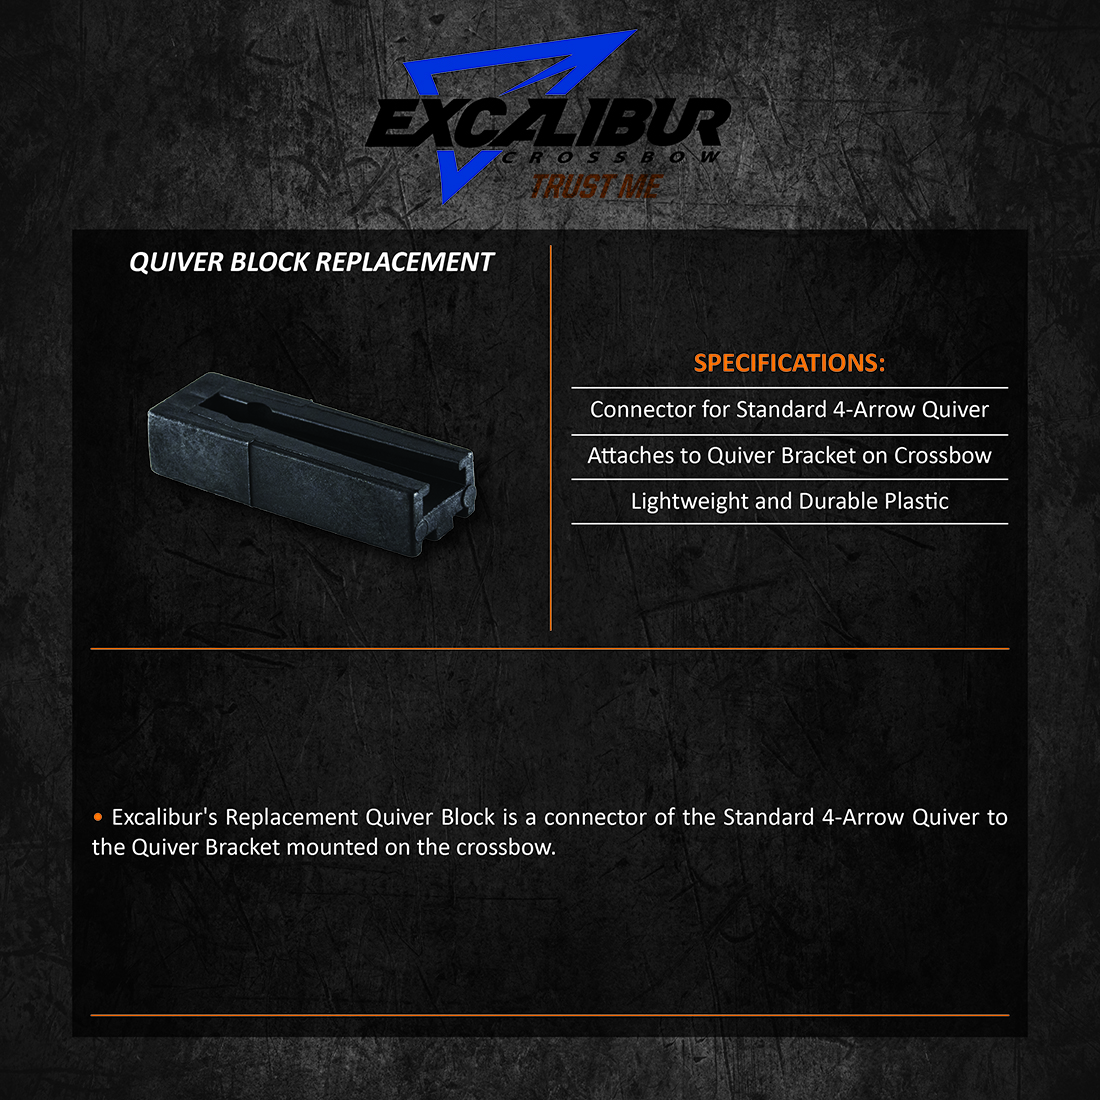 Excalibur_Quiver_Block_Replacement_Product_Description